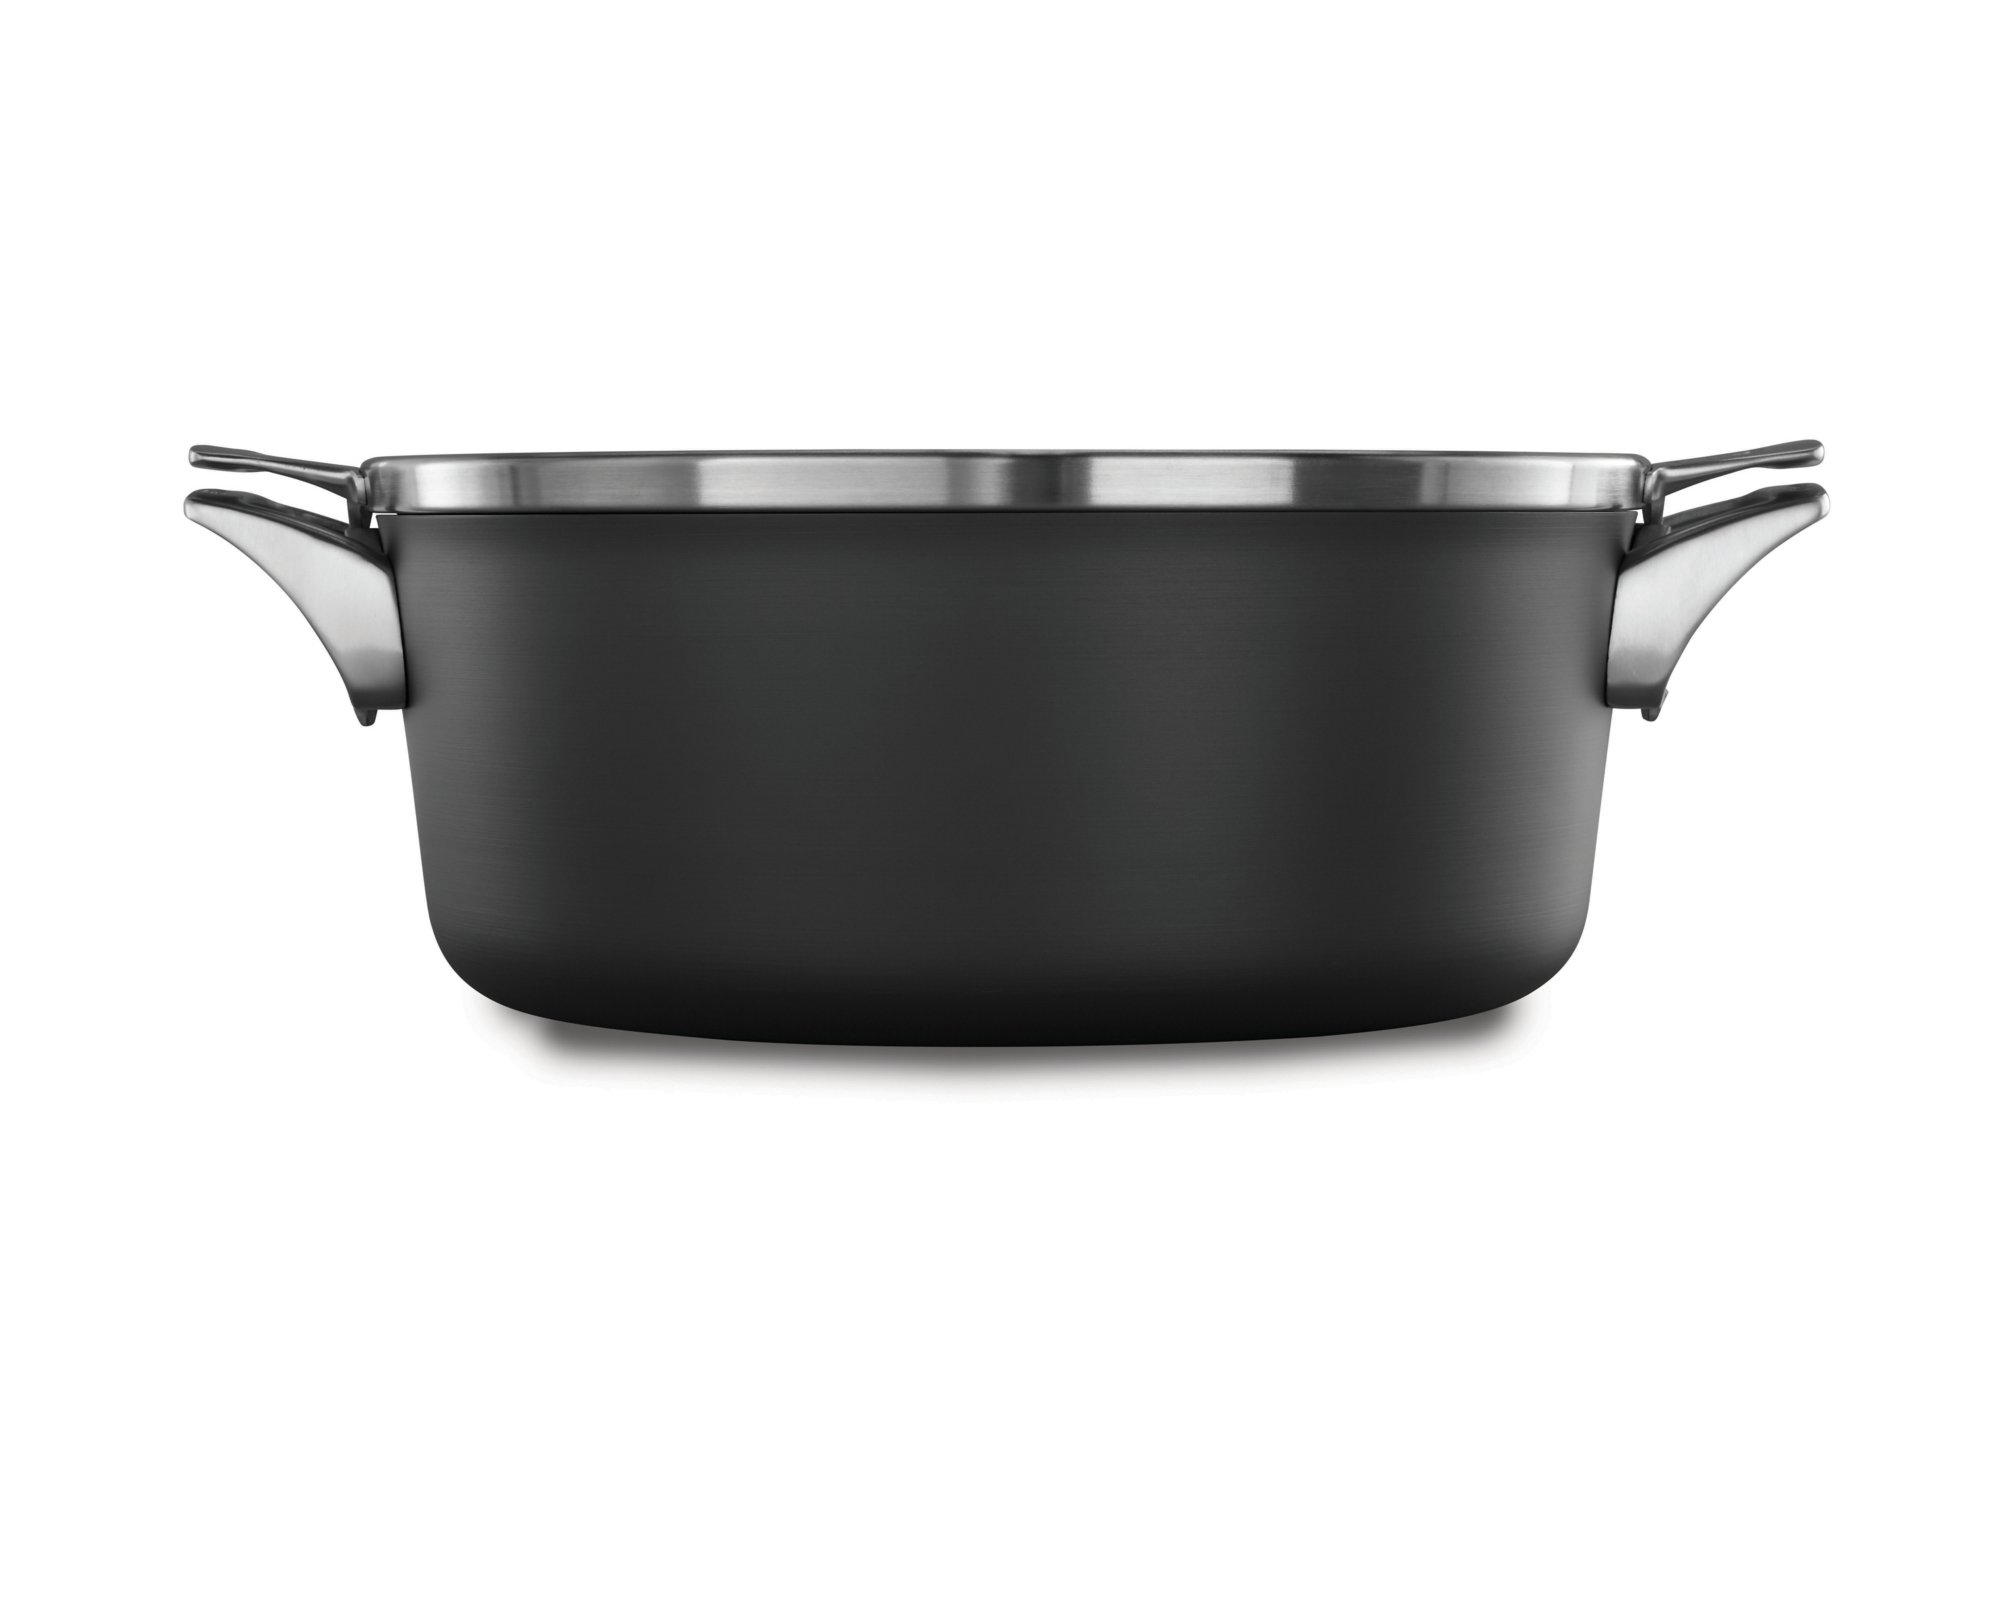 Calphalon Premier™ Space Saving Hard Anodized Nonstick 8.5 qt. Dutch Oven with Cover